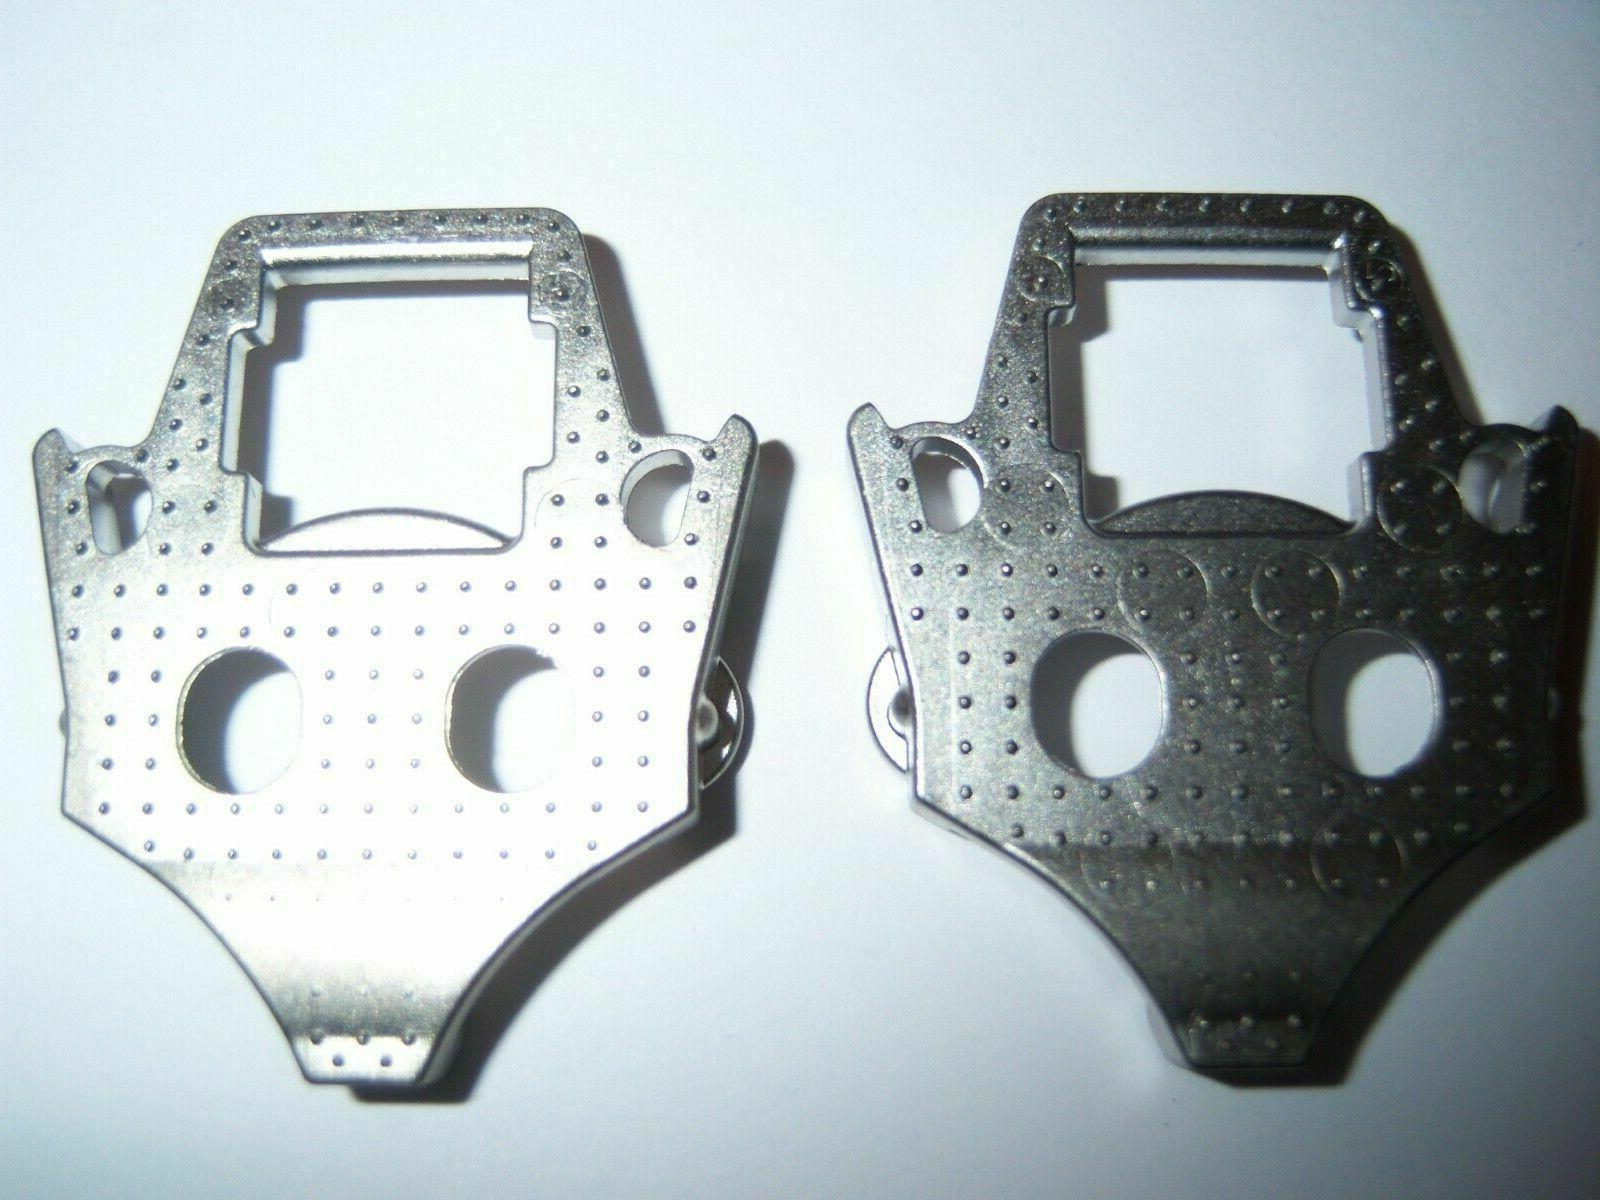 Speedplay Frog Road Mountain Clips Clip Hardware